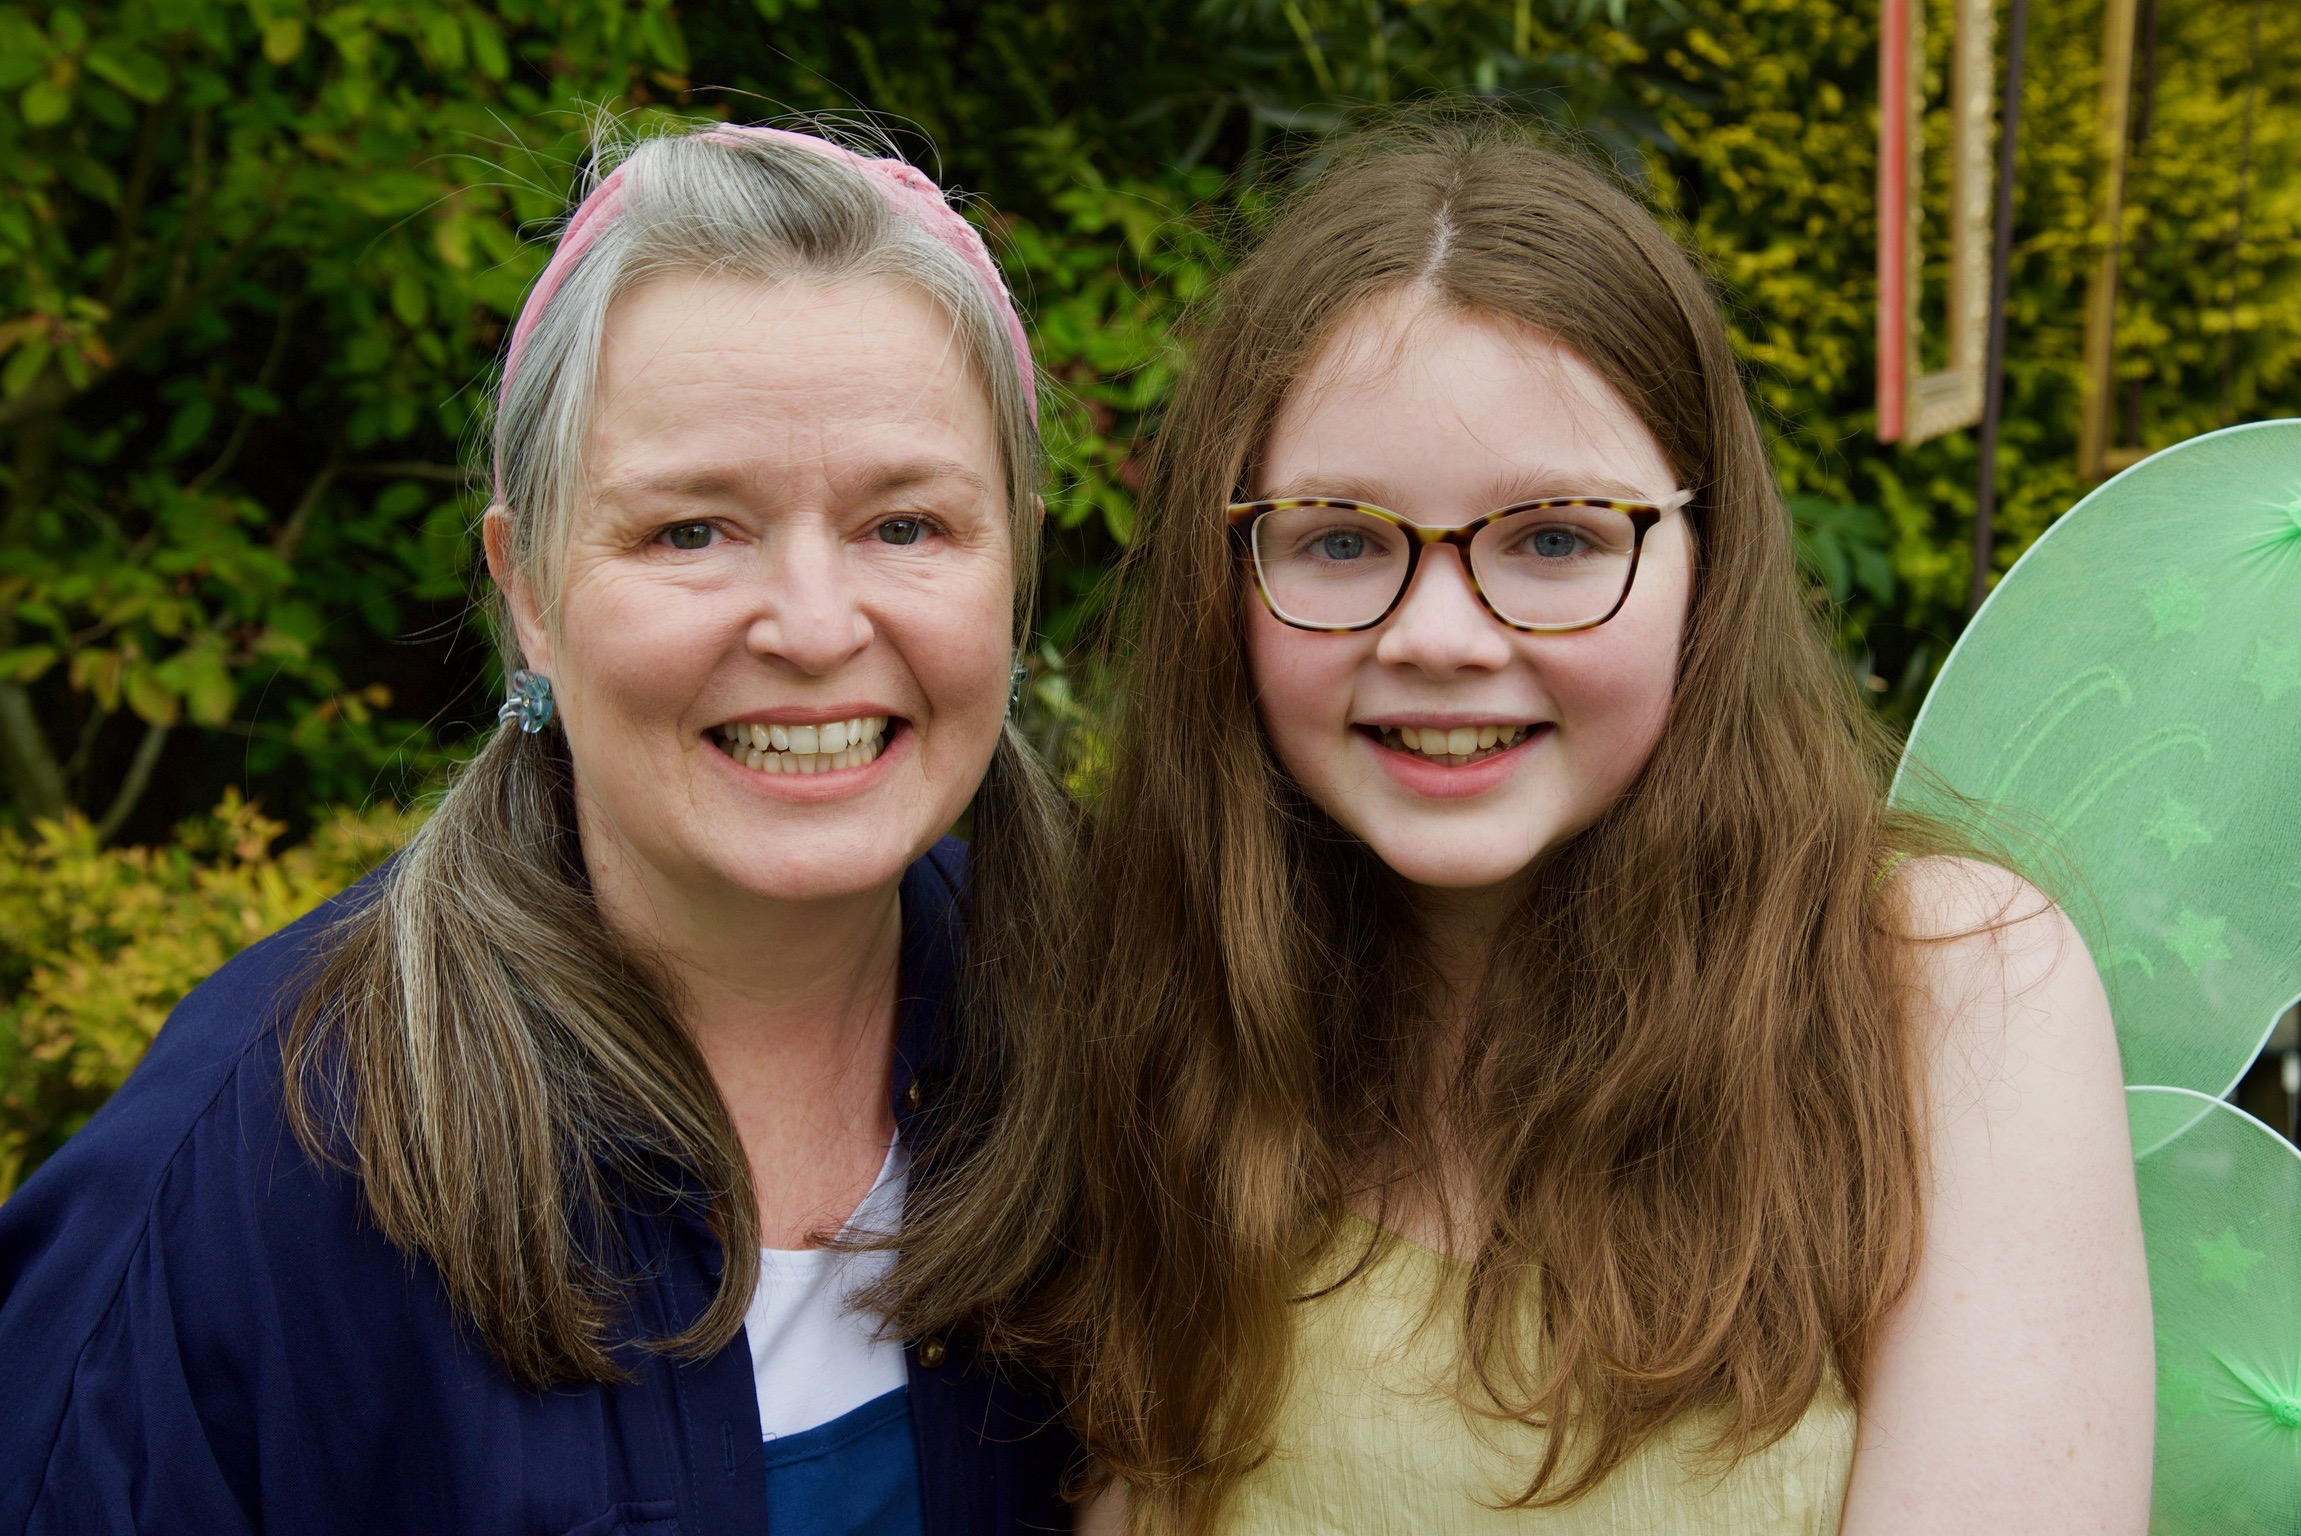 Jayne and her daughter as Blossom and Twig